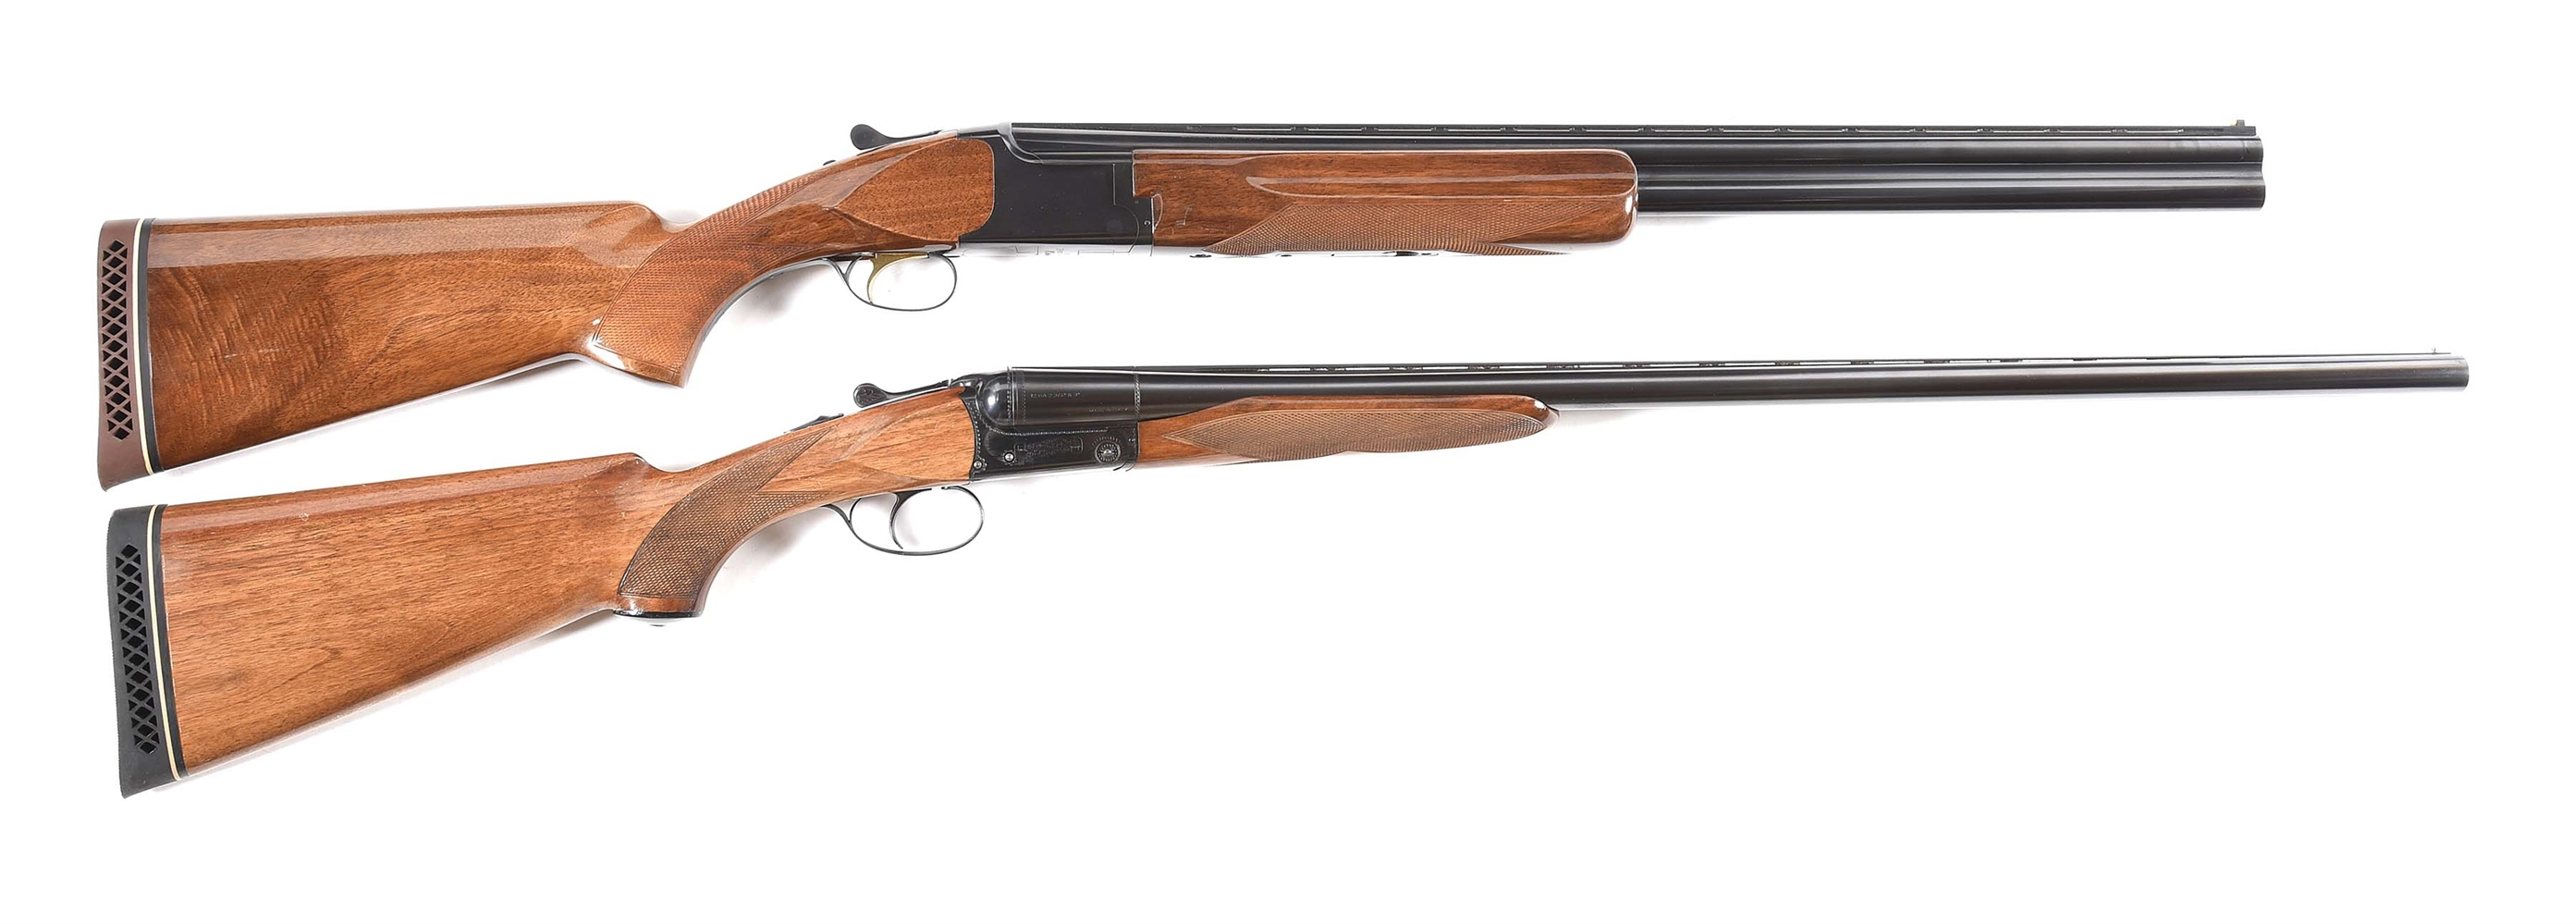 (M) LOT OF TWO 12 GUAGE SHOTGUNS BY BROWNING AND CHARLES DALY